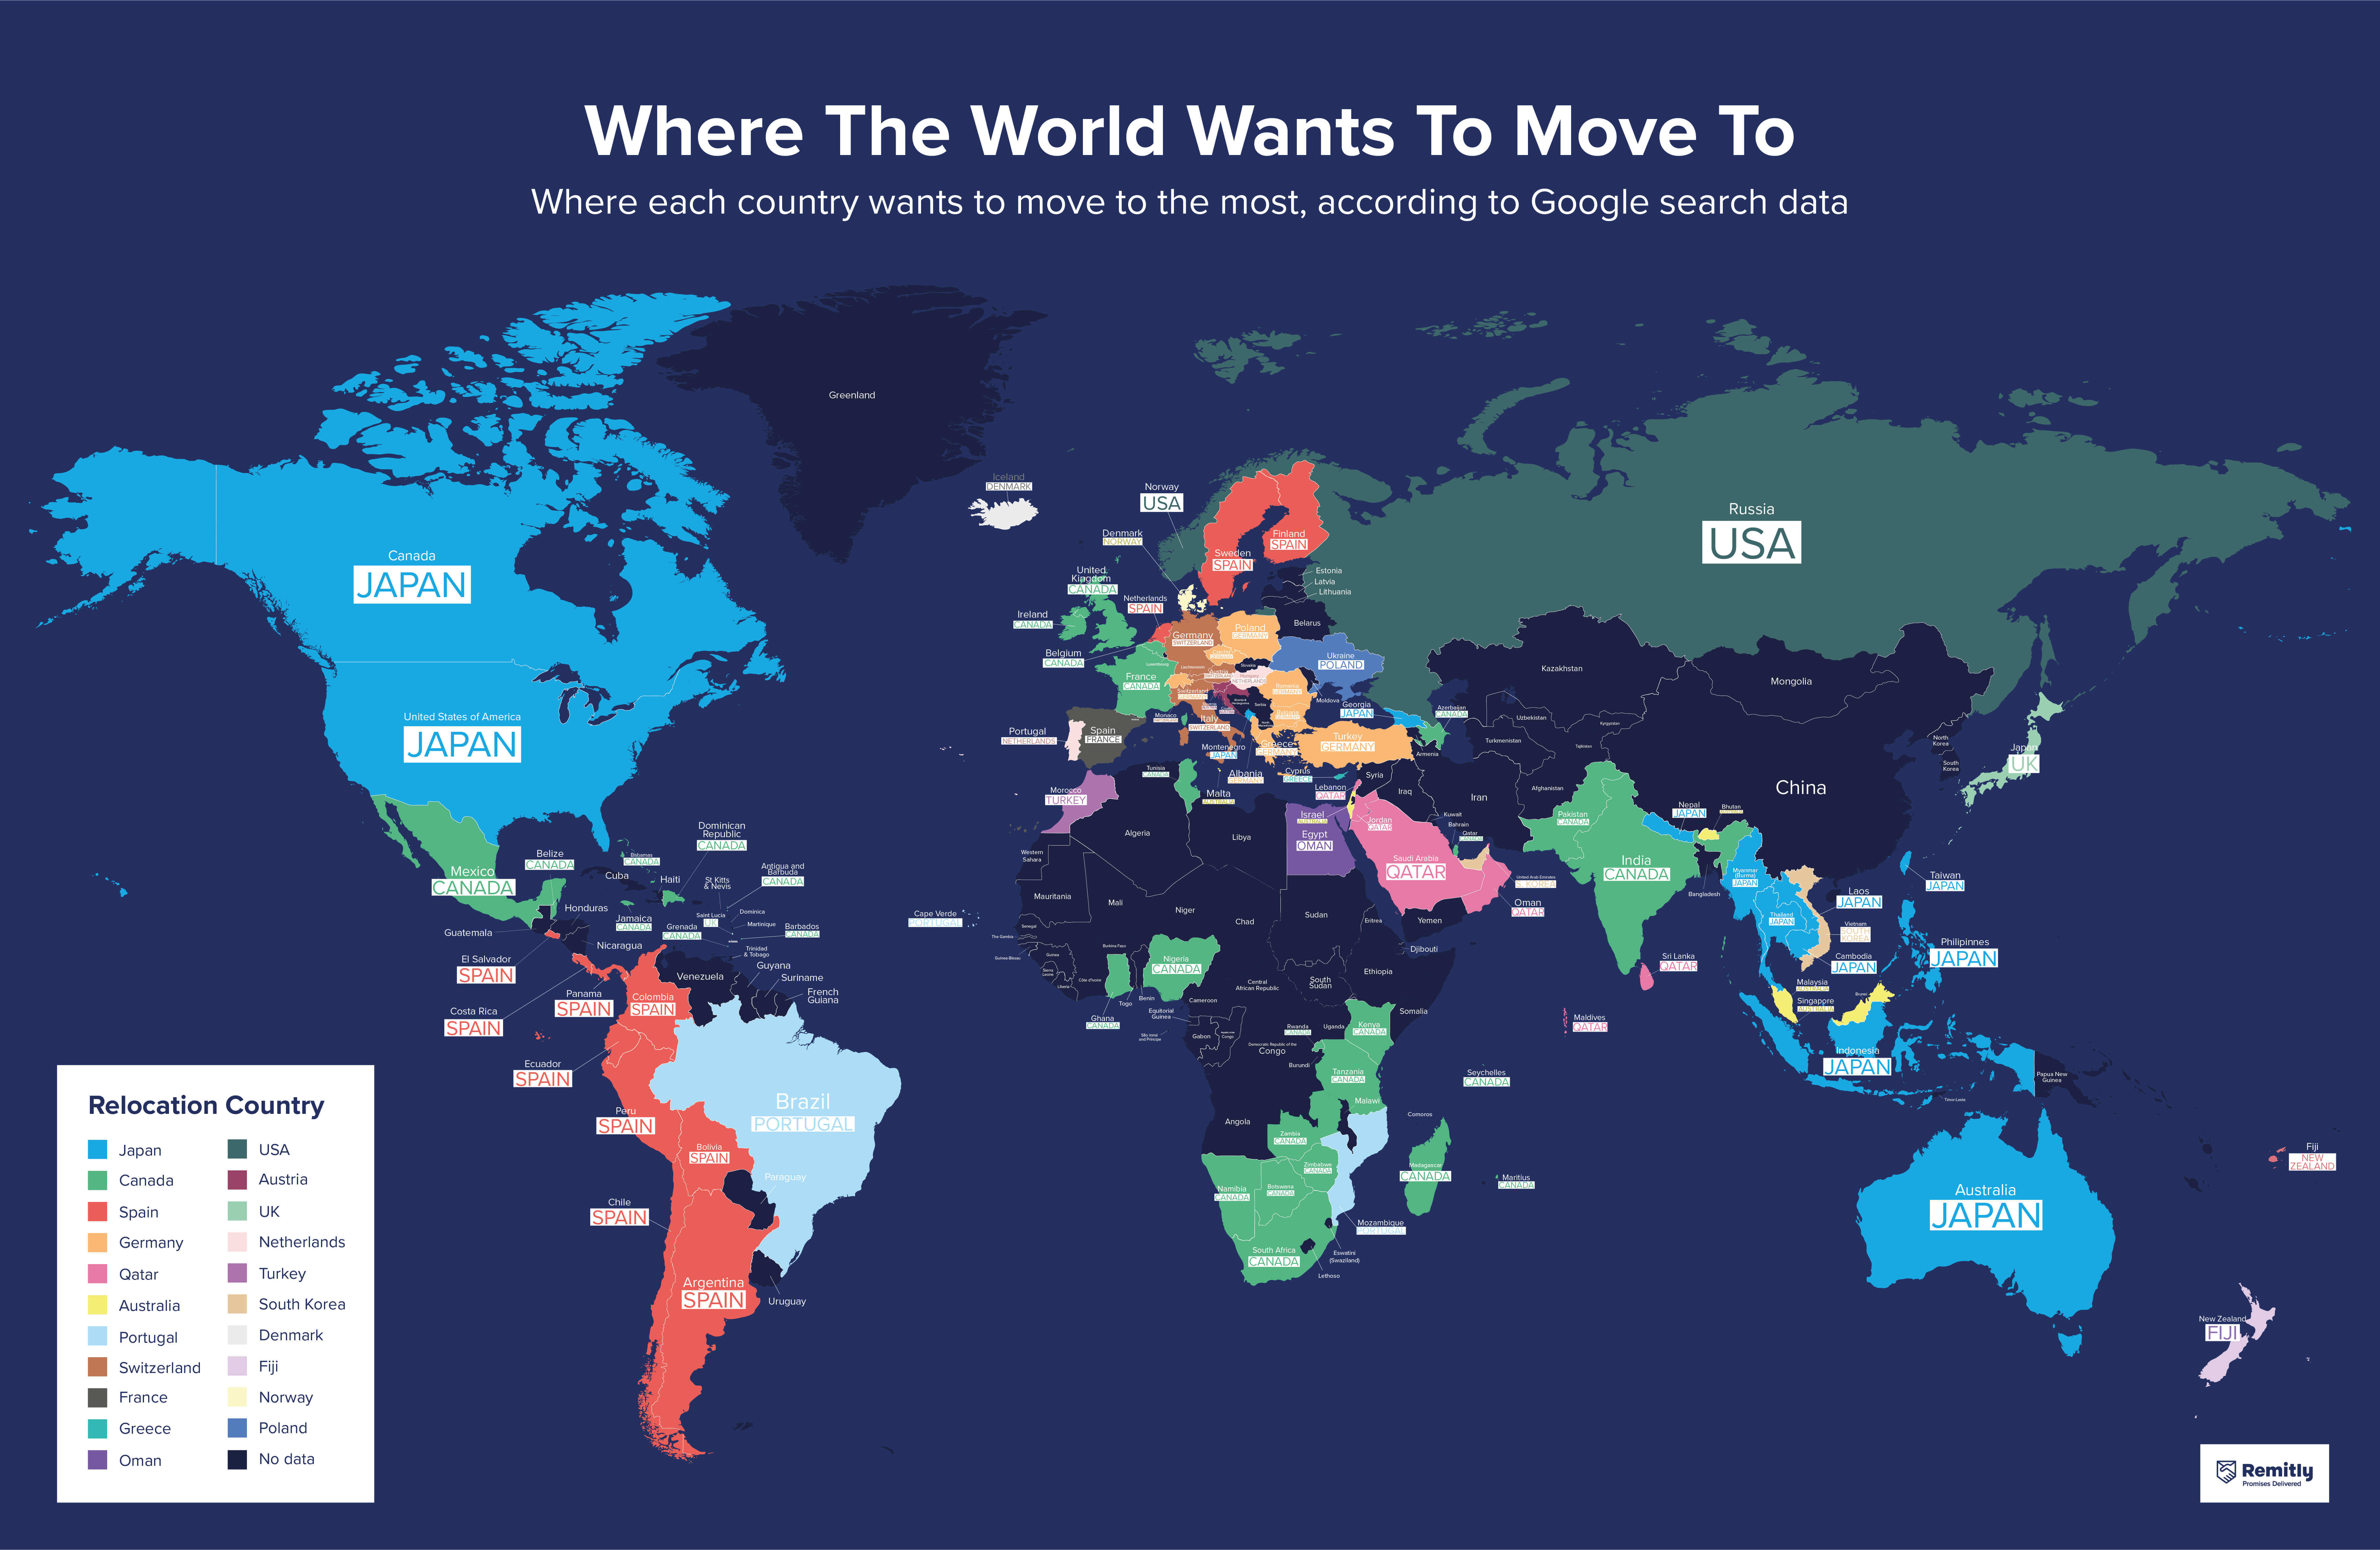 Where the world wants to move to - world map